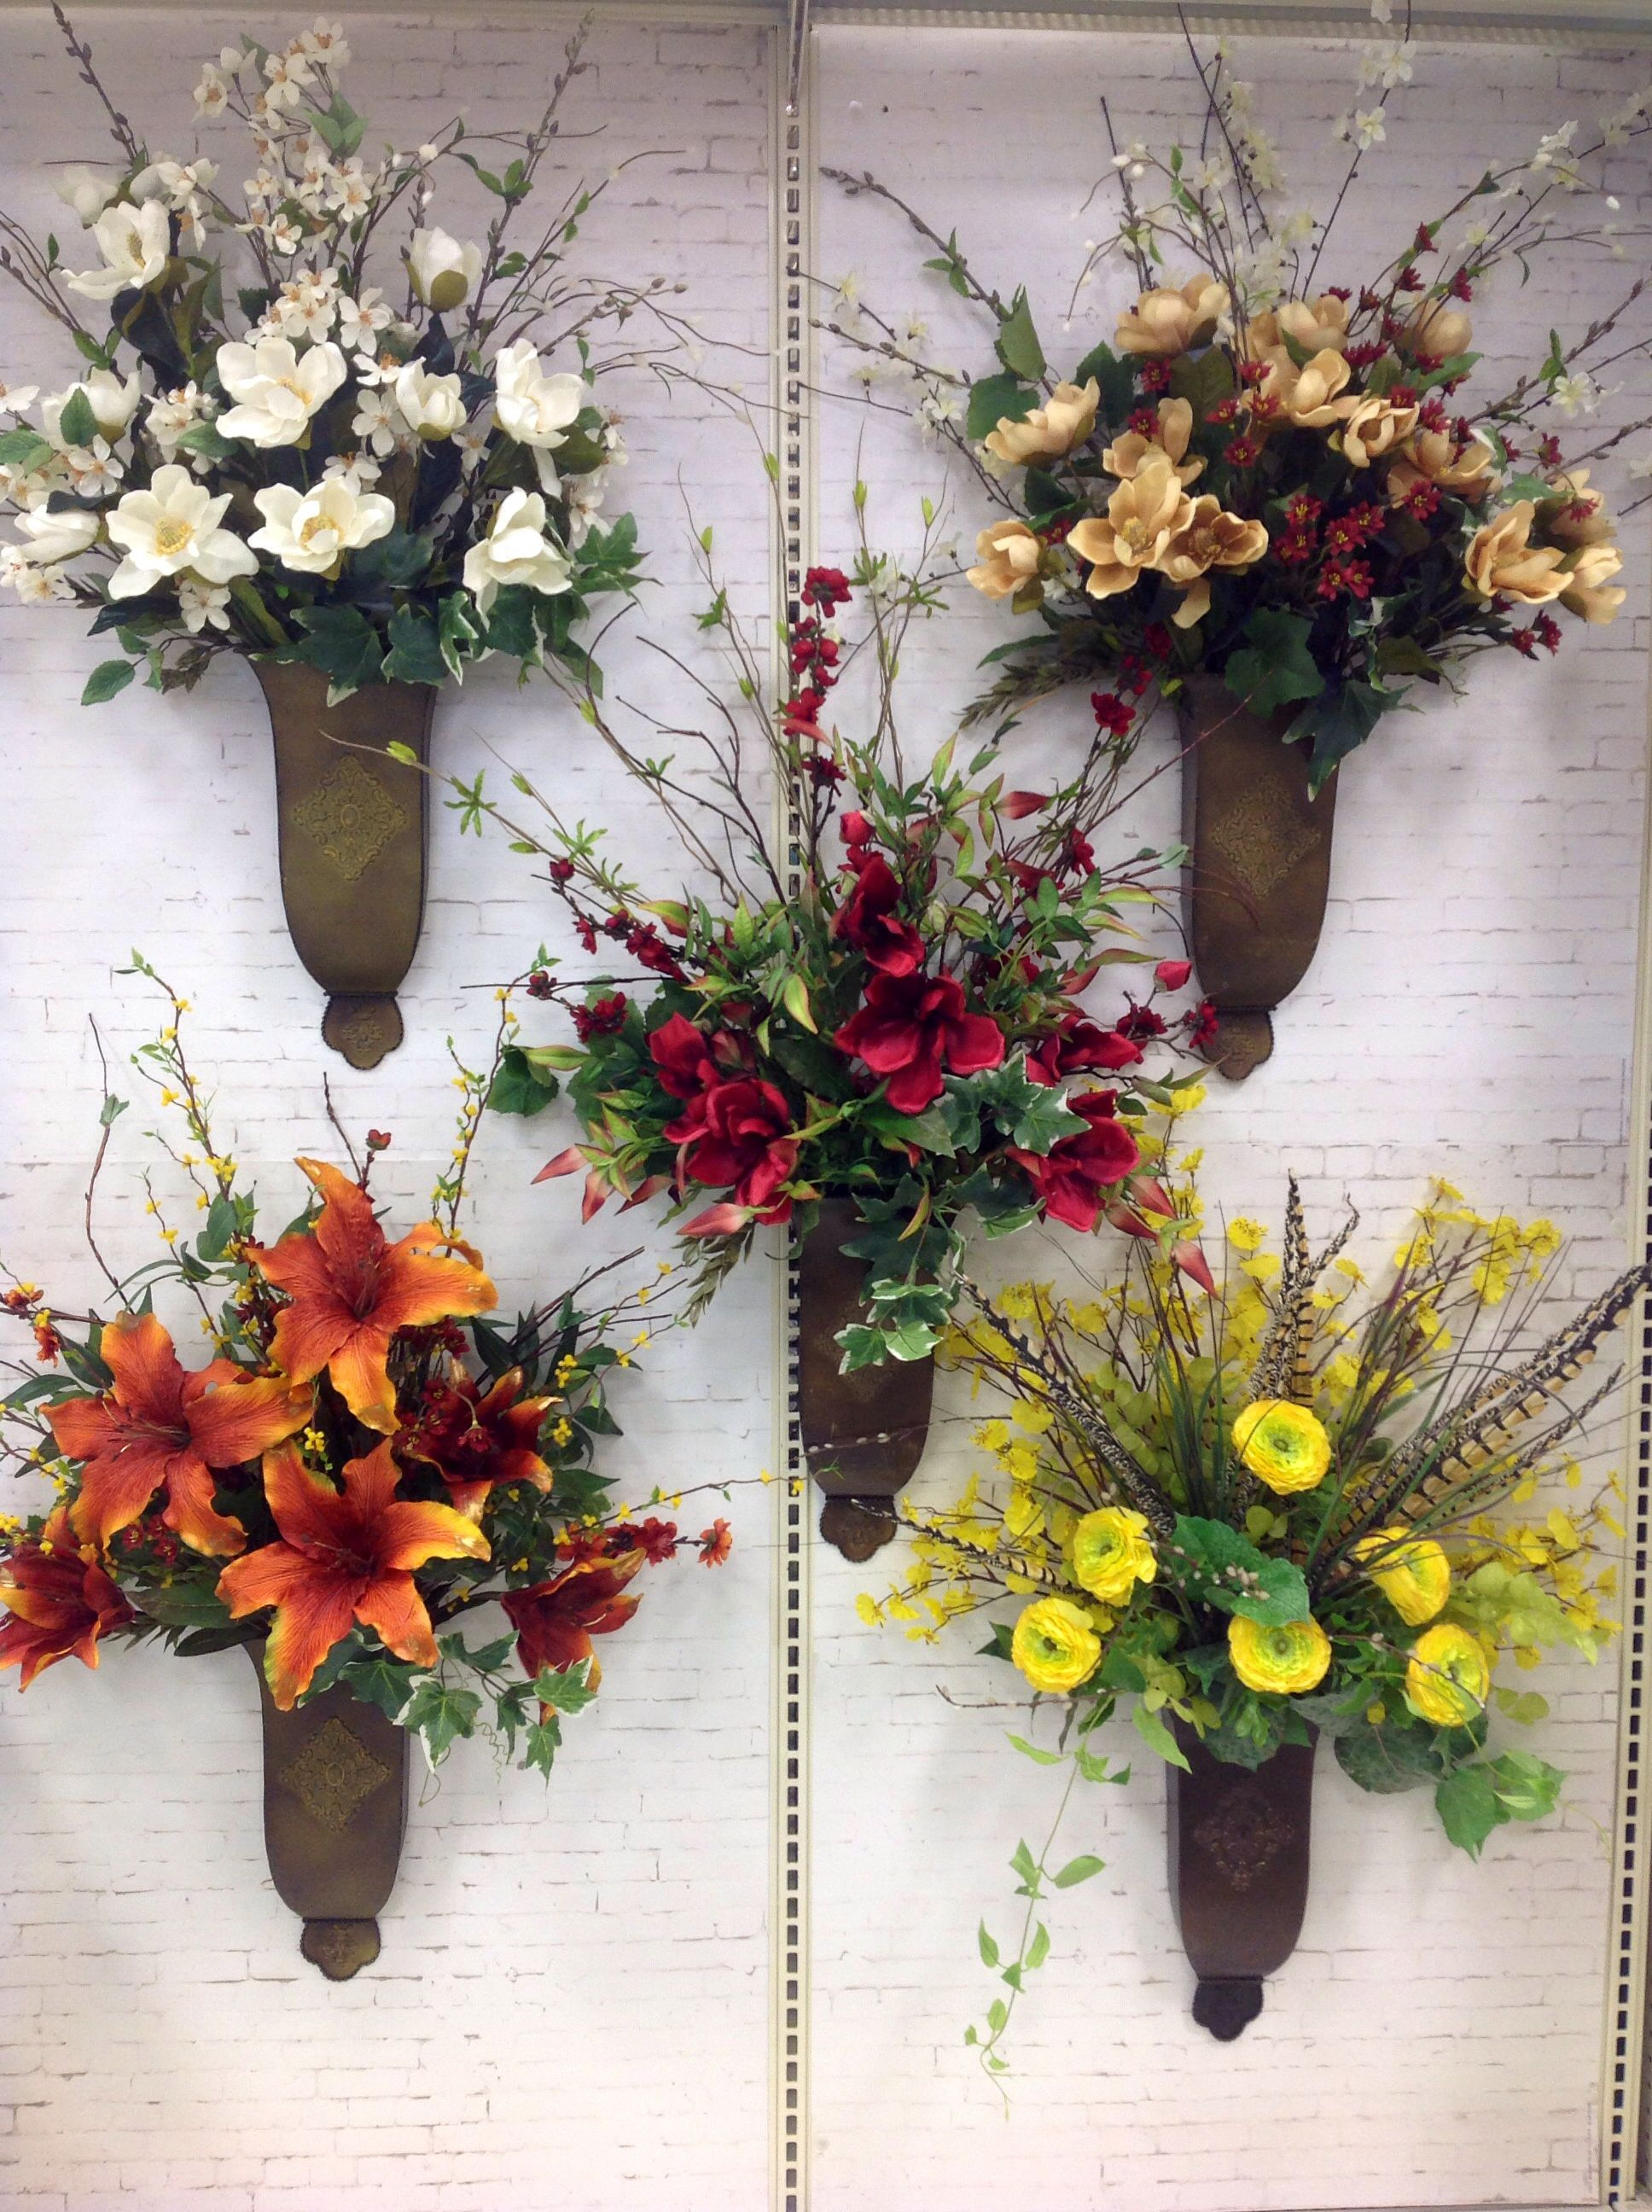 Spring 2014 , by Andi (9989) | Flower arrangements ... on Decorative Wall Sconces For Flowers Arrangements id=94601